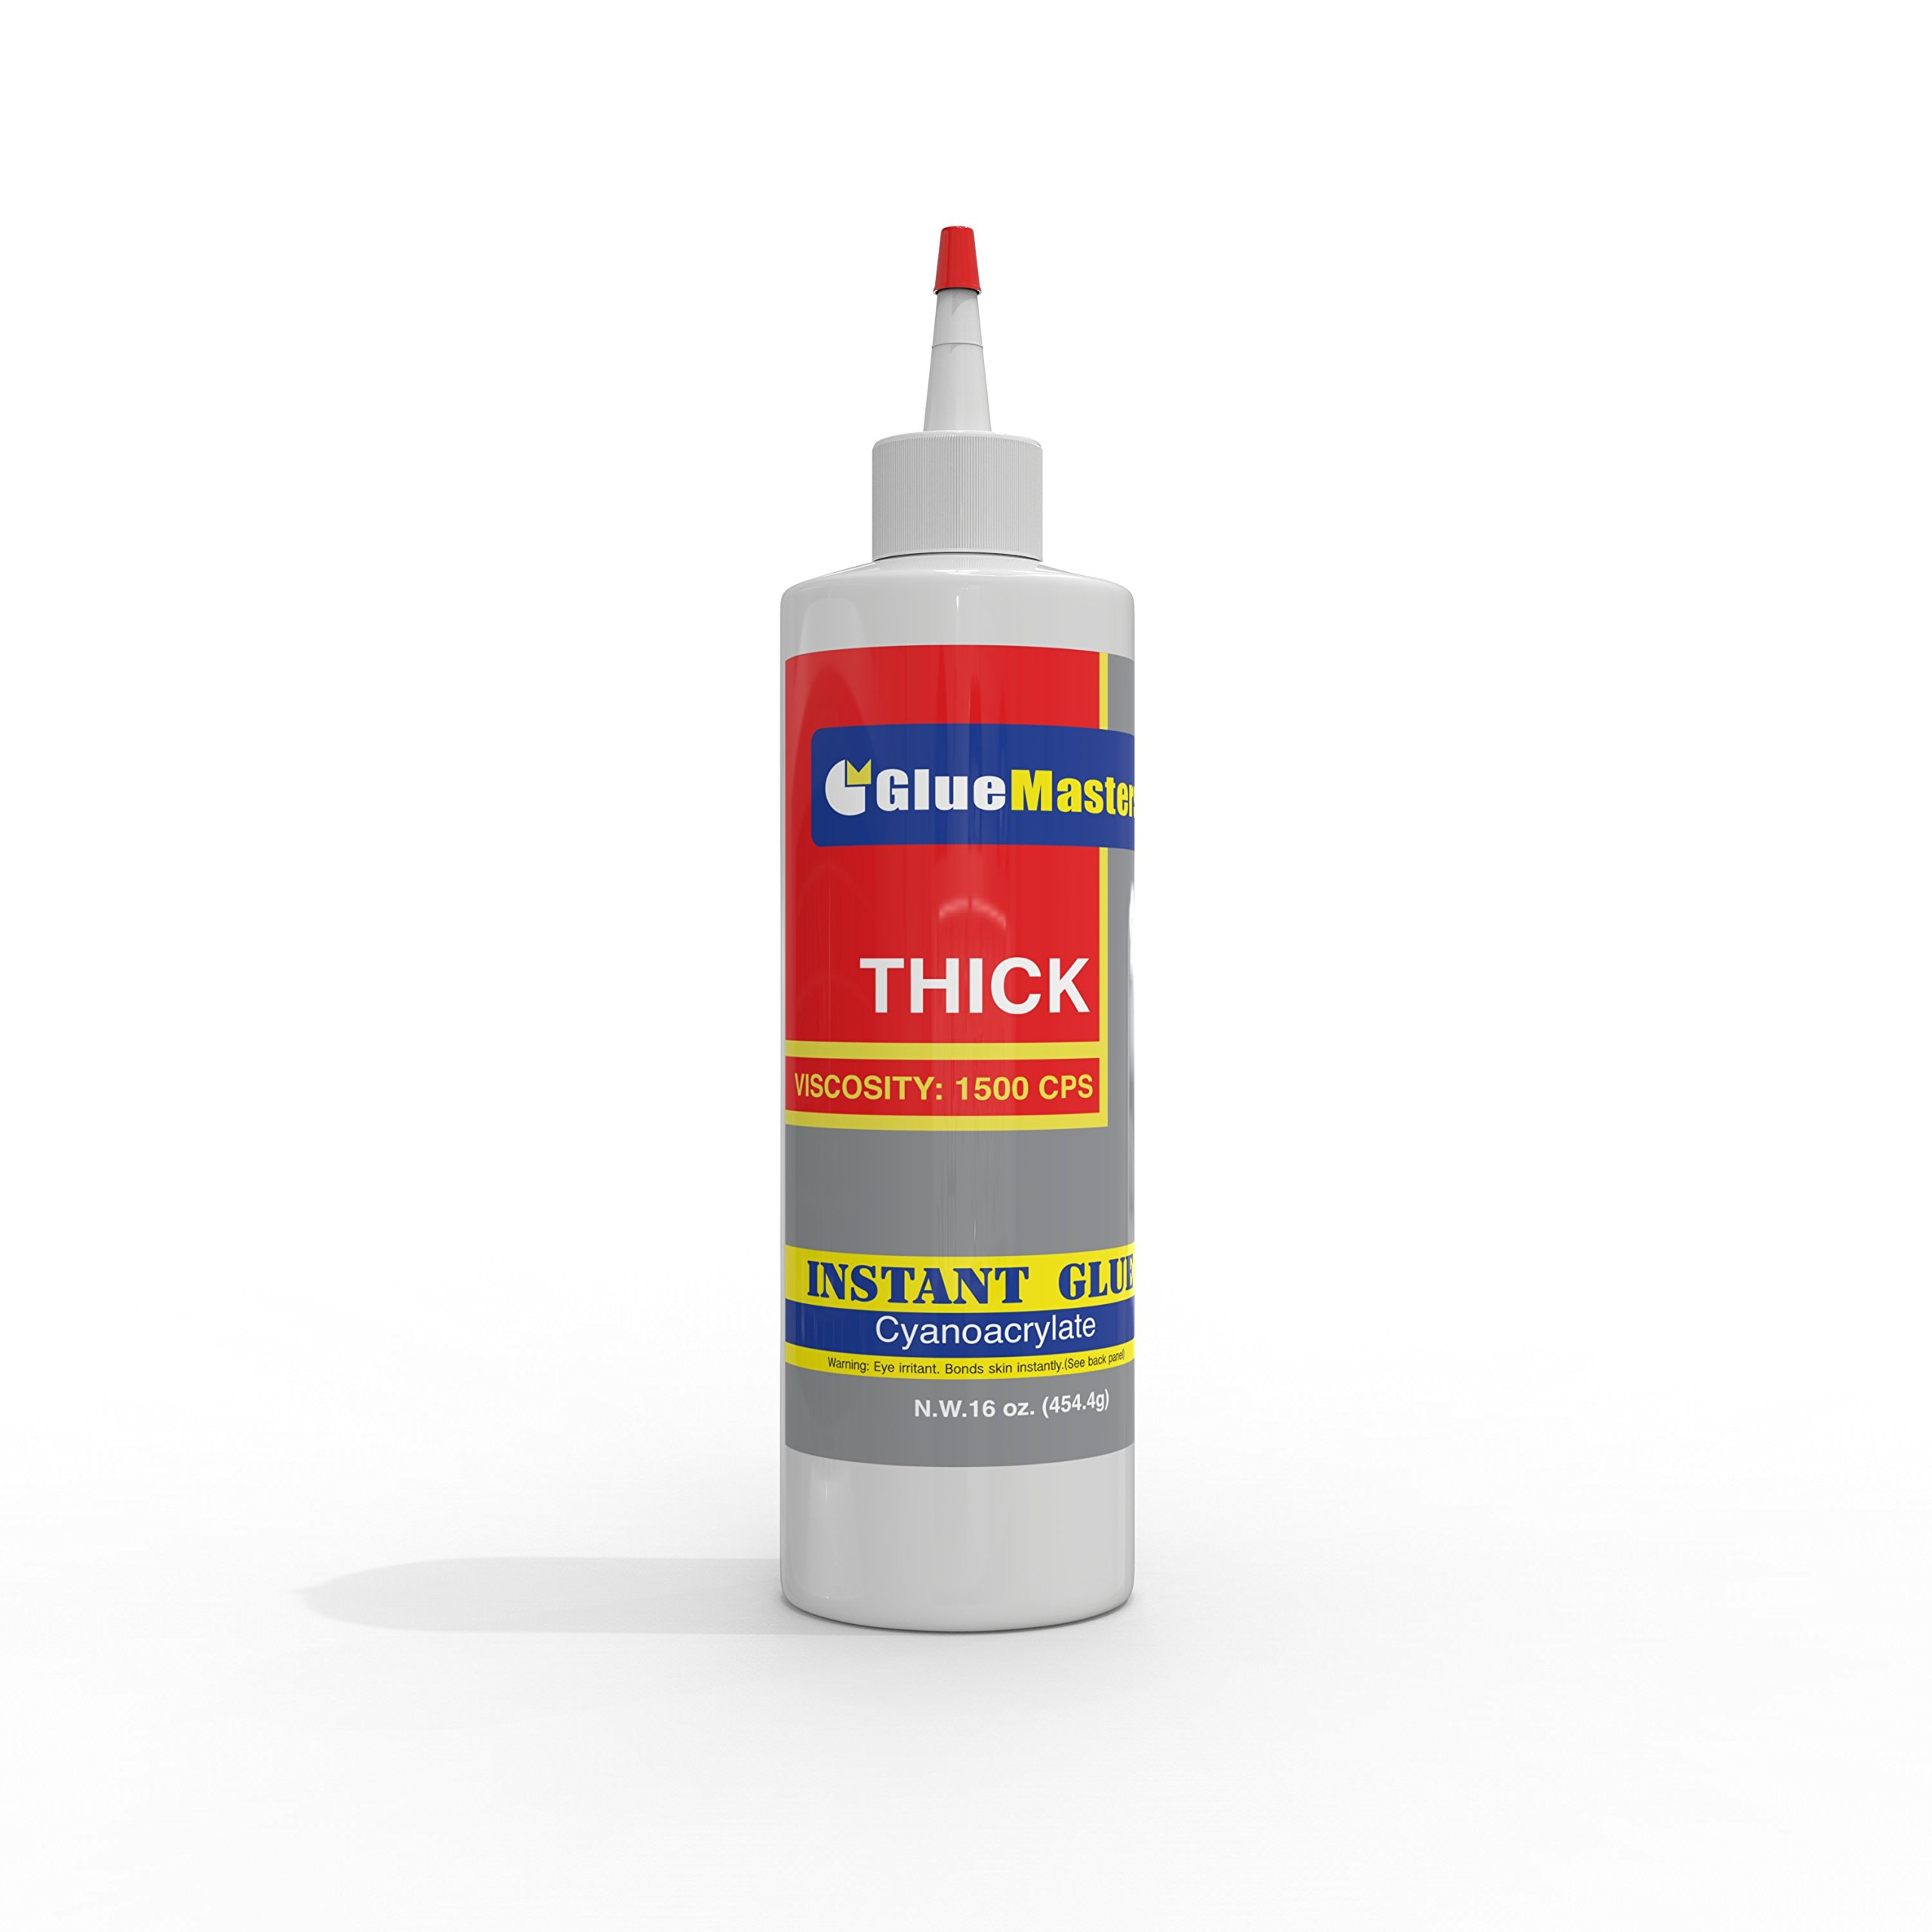 Super Large 16 OZ (453-gram) Bottle with Protective Cap - Thick 1500 CPS Viscosity - Great for General Repairs, Woodworking and Hobby Projects - Best CA Glue on Cyanoacrylate Market